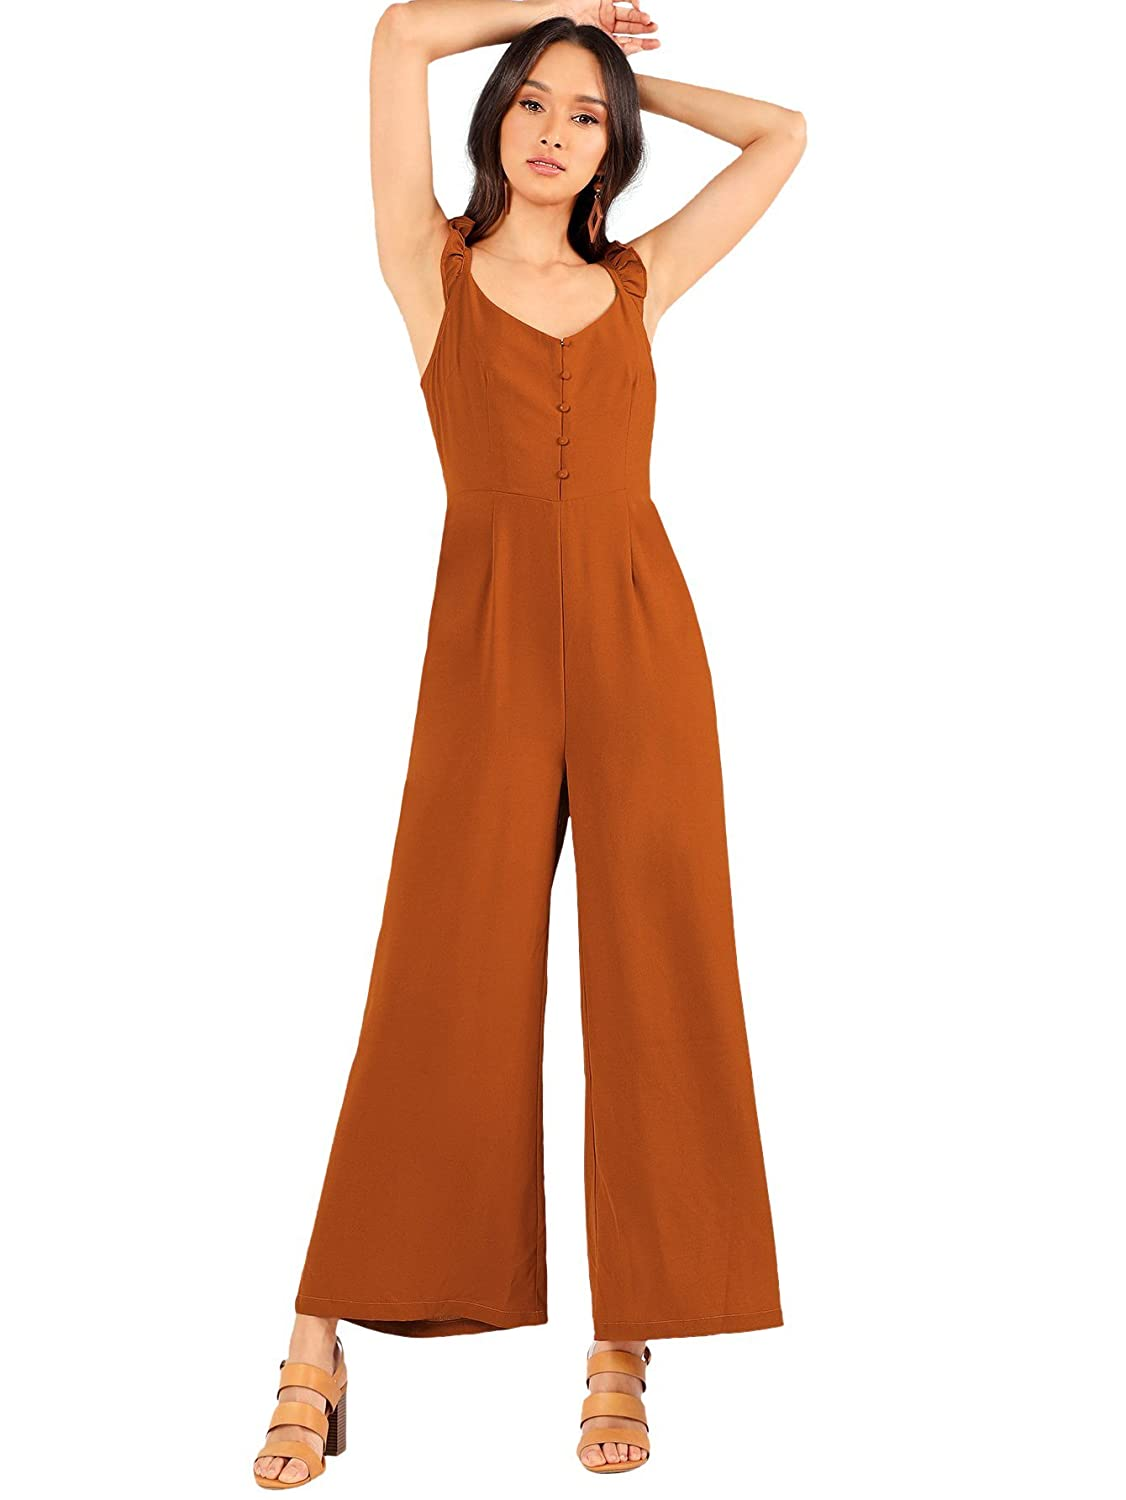 8fd93db5373 Amazon.com  SheIn Women s Sleeveless Solid Wide Leg Long Pants Culotte  Jumpsuit Rompers X-Small Brown  Clothing